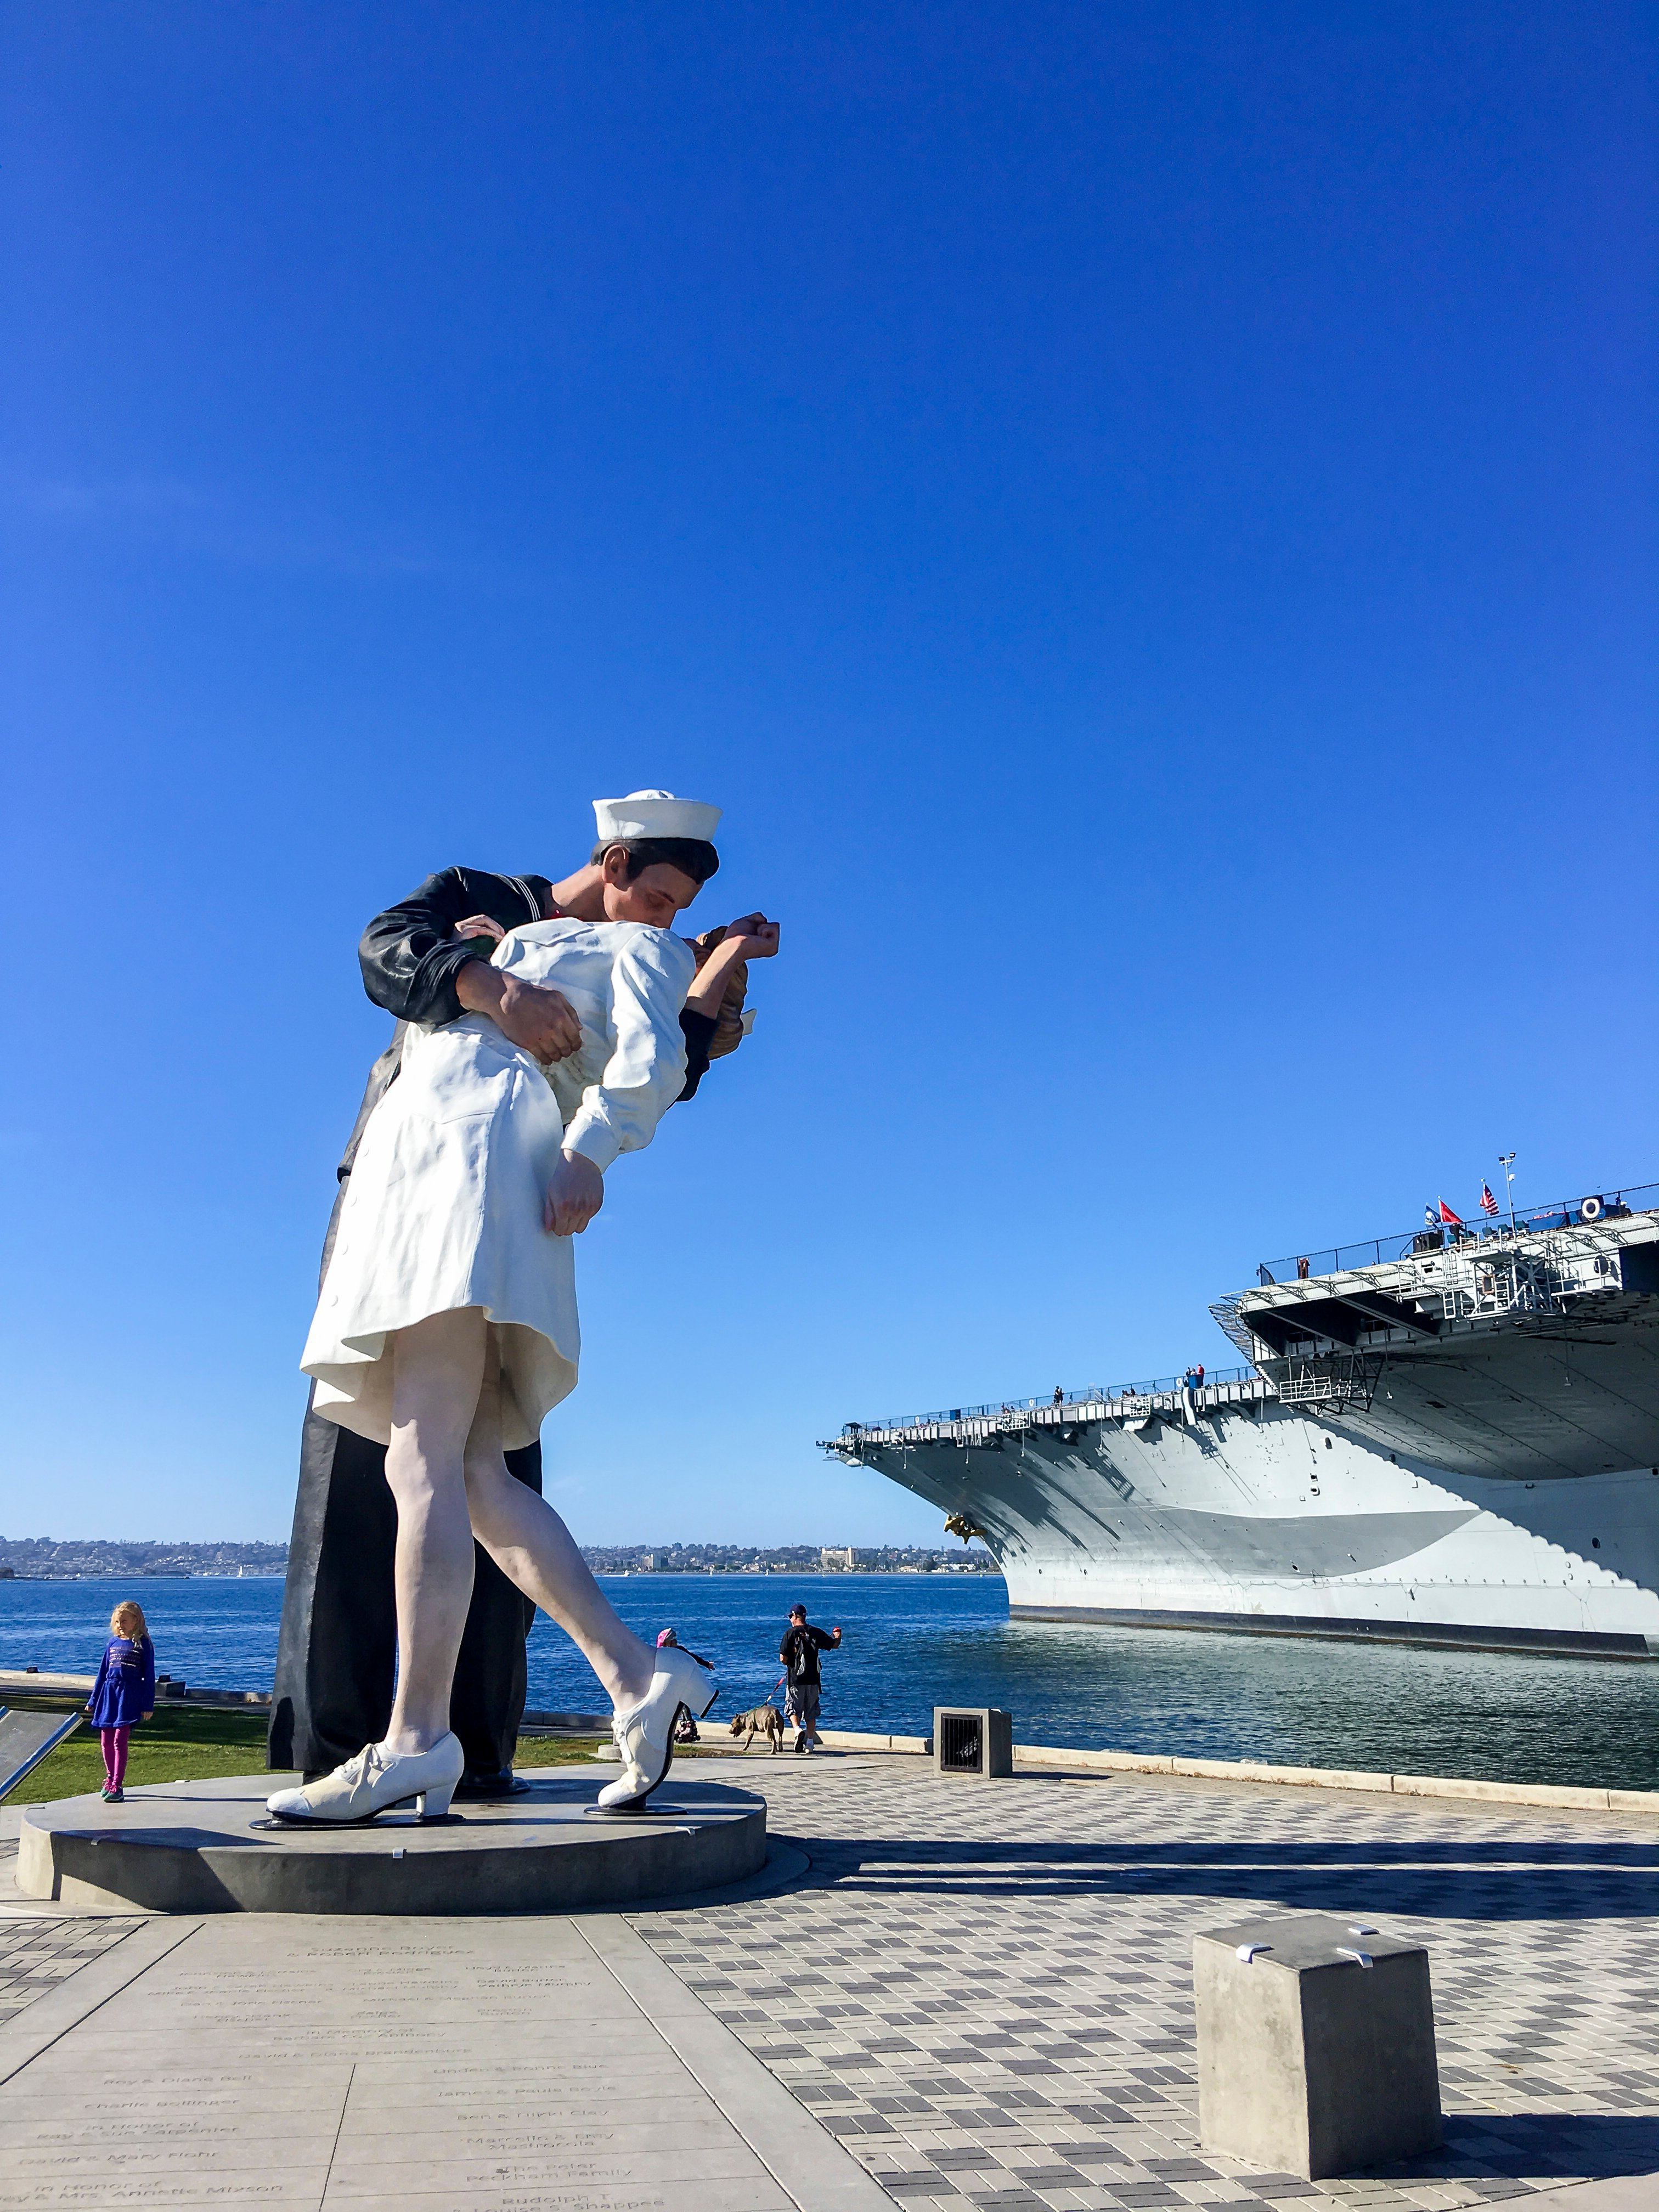 The Unconditional Surrender statue on a sunny day in downtown San Diego.